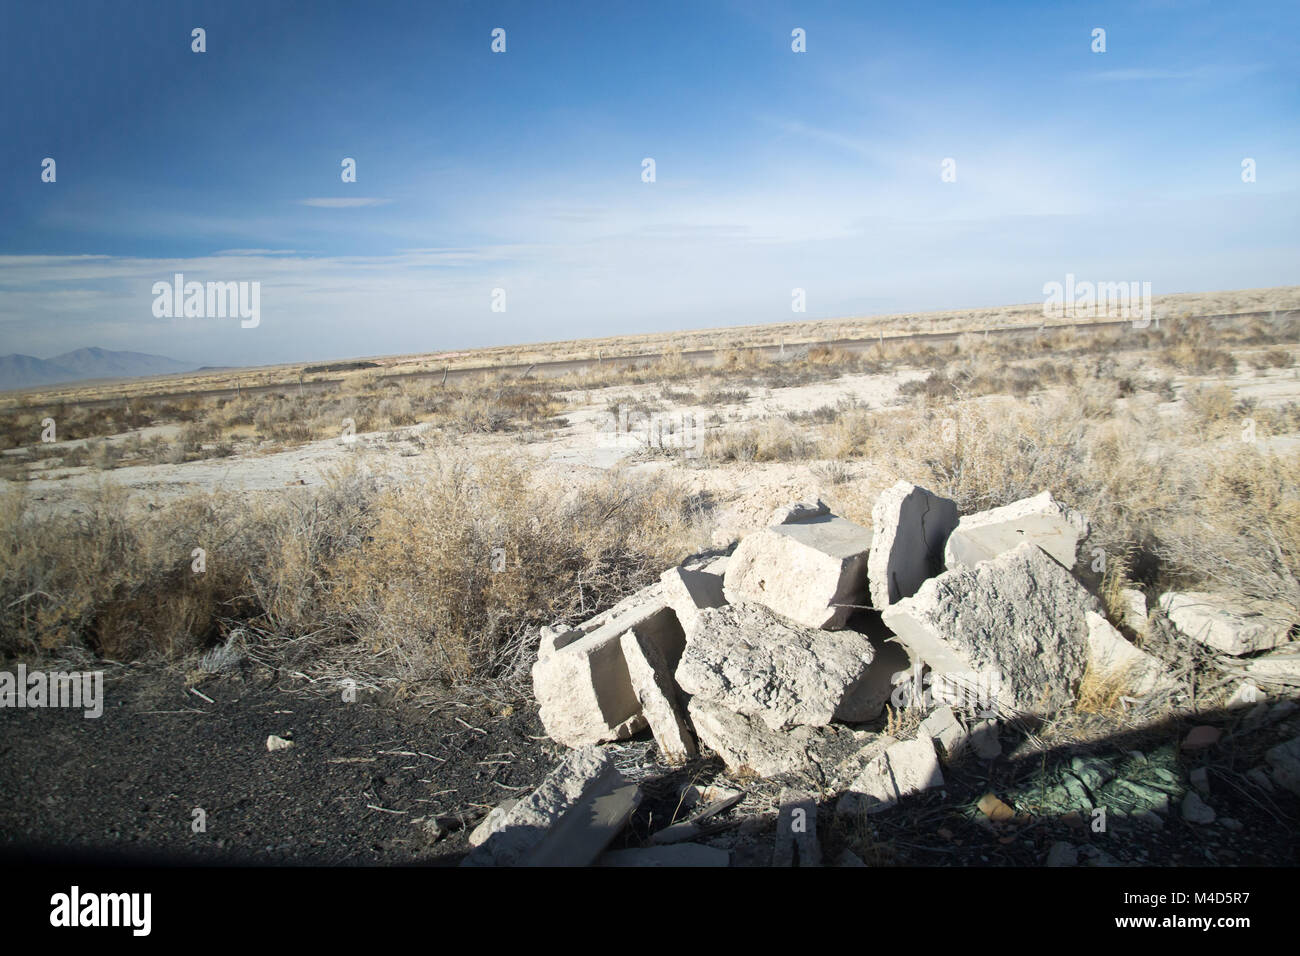 The rubble of the historical monument topaz internment camp where japanese americans were imprisoned during the - Stock Image